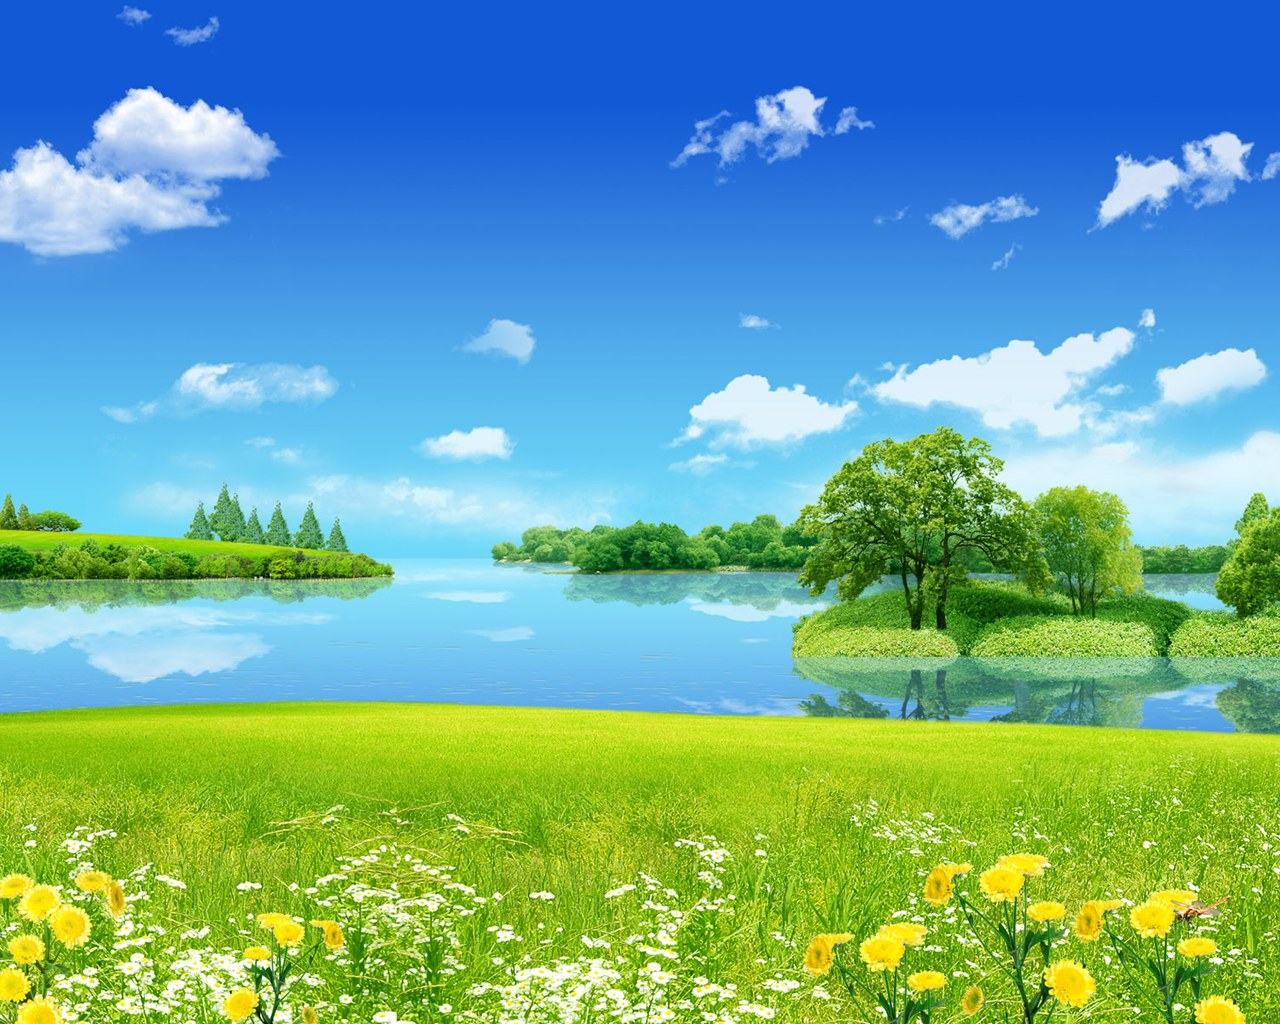 summer dreamland summer dreamland wallpaper download 1280x1024